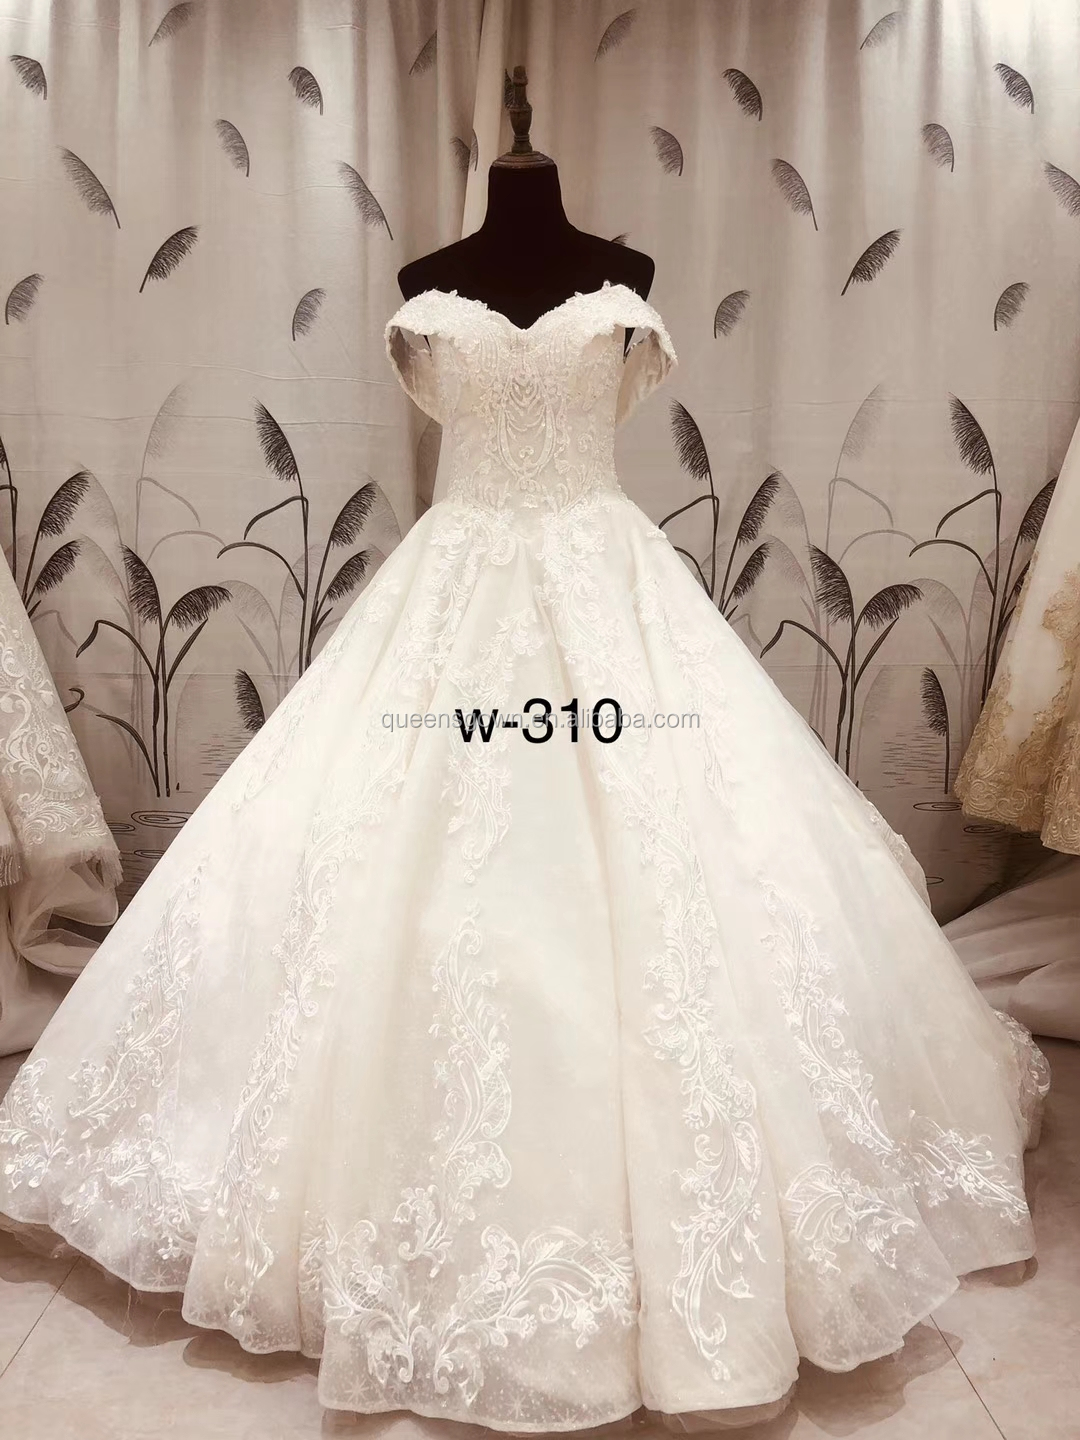 New Lace Appliqued Modern 2018 Patterns Bridal Gown Customized Full